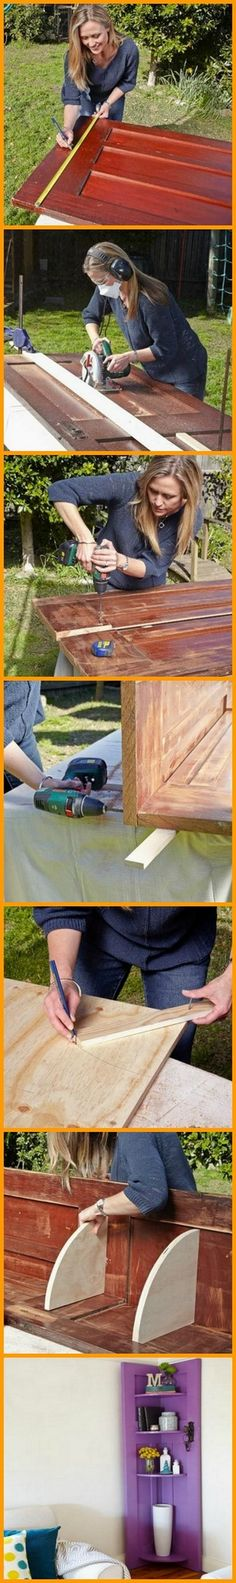 This DIY corner shelf is a clever way of giving new purpose to old doors. Turn an old door into a corner shelf by viewing the full album of the project at http://theownerbuildernetwork.co/n0qa Is ther